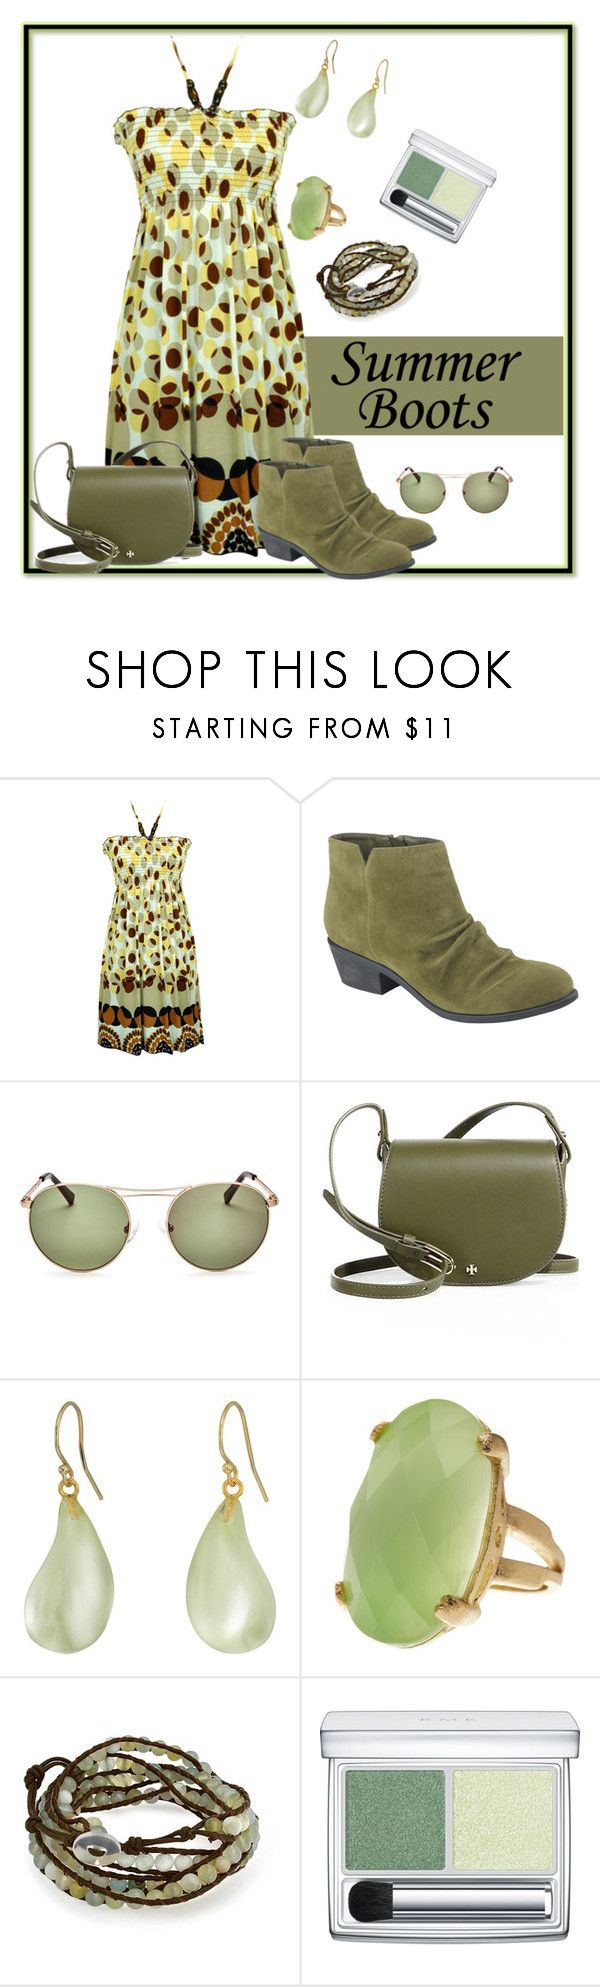 """""""summer boots"""" by pam-doel ❤ liked on Polyvore featuring jon & anna, Bella Marie, Kendall + Kylie, Tory Burch, Alexis Bittar, Rivka Friedman, Bling Jewelry and RMK"""